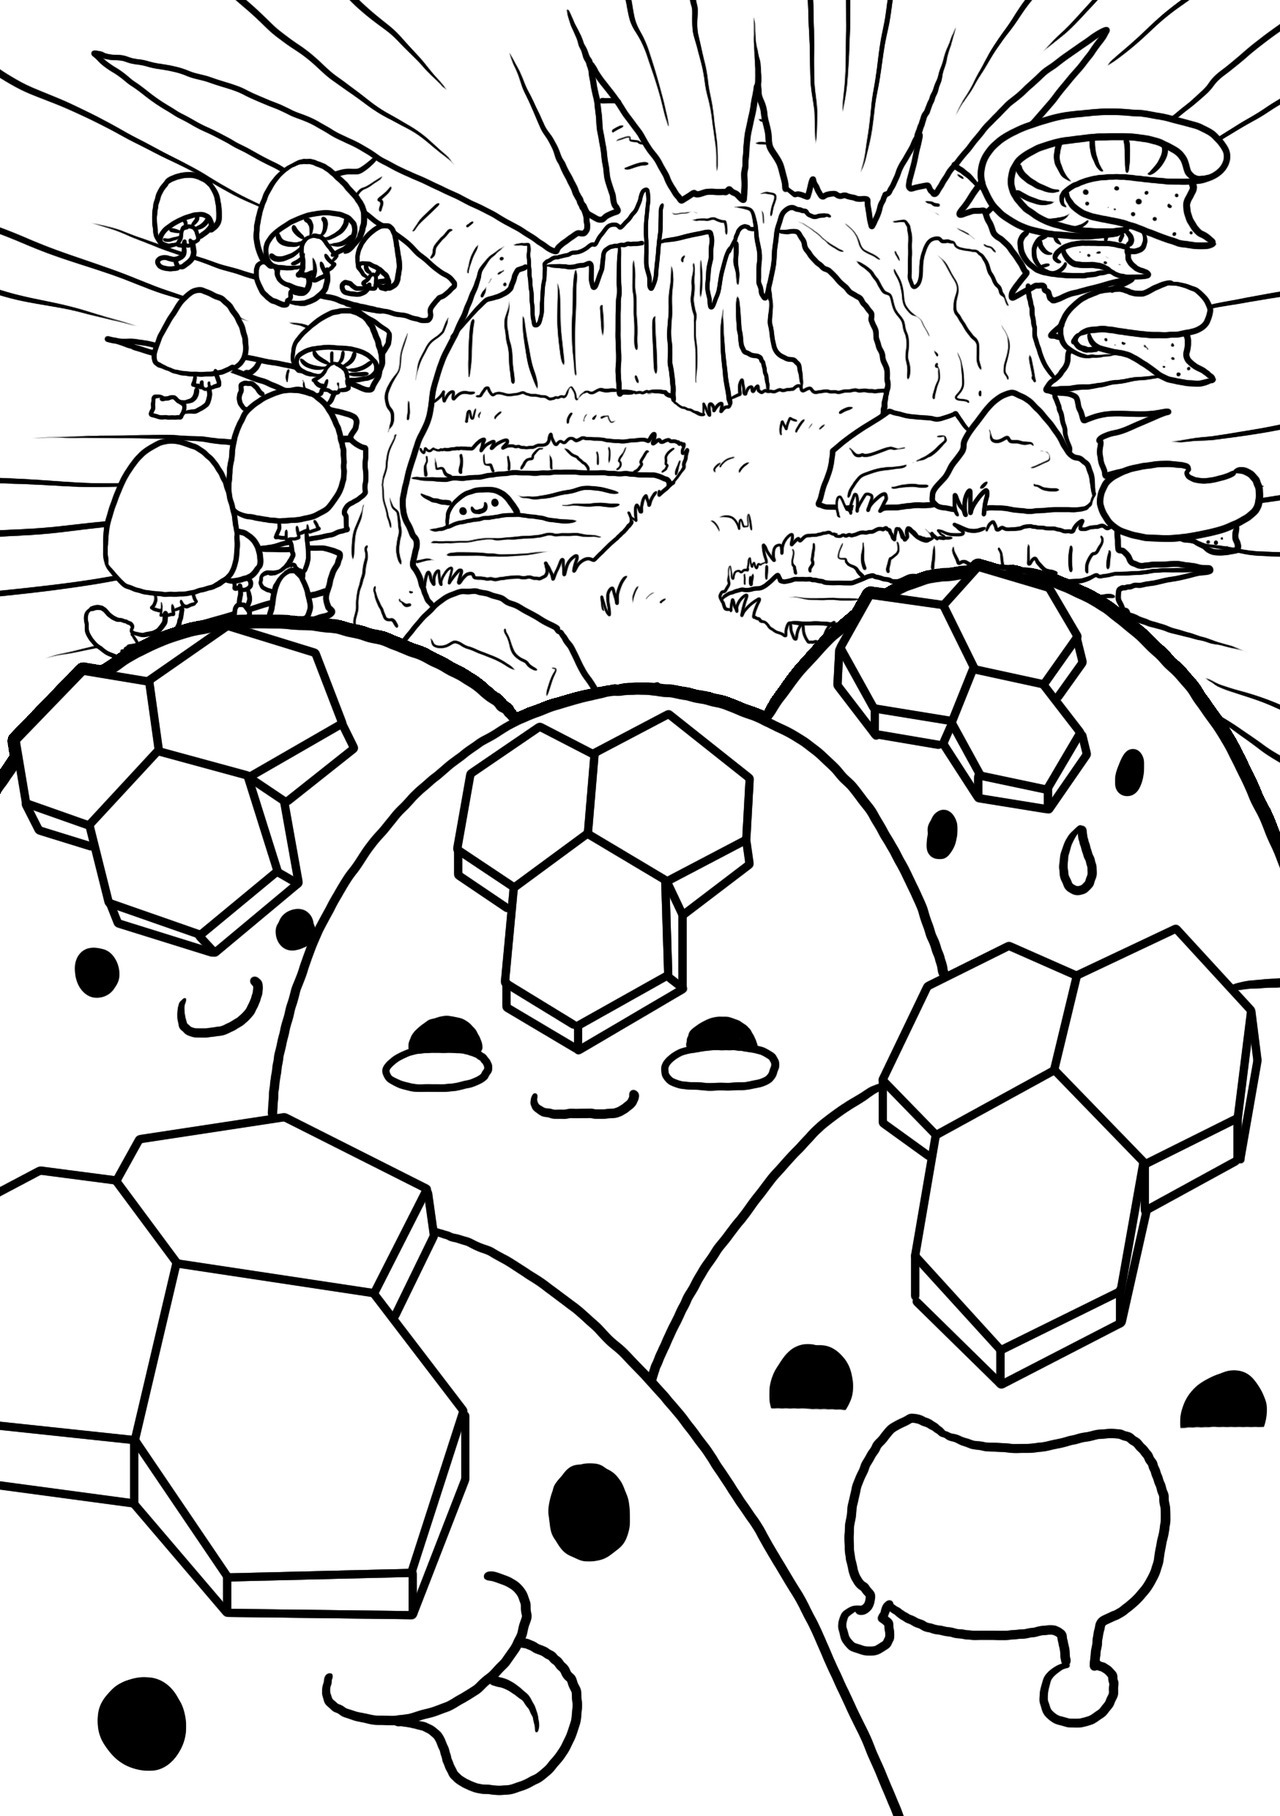 Slime Rancher Coloring Pages  to Print 9h - Free Download